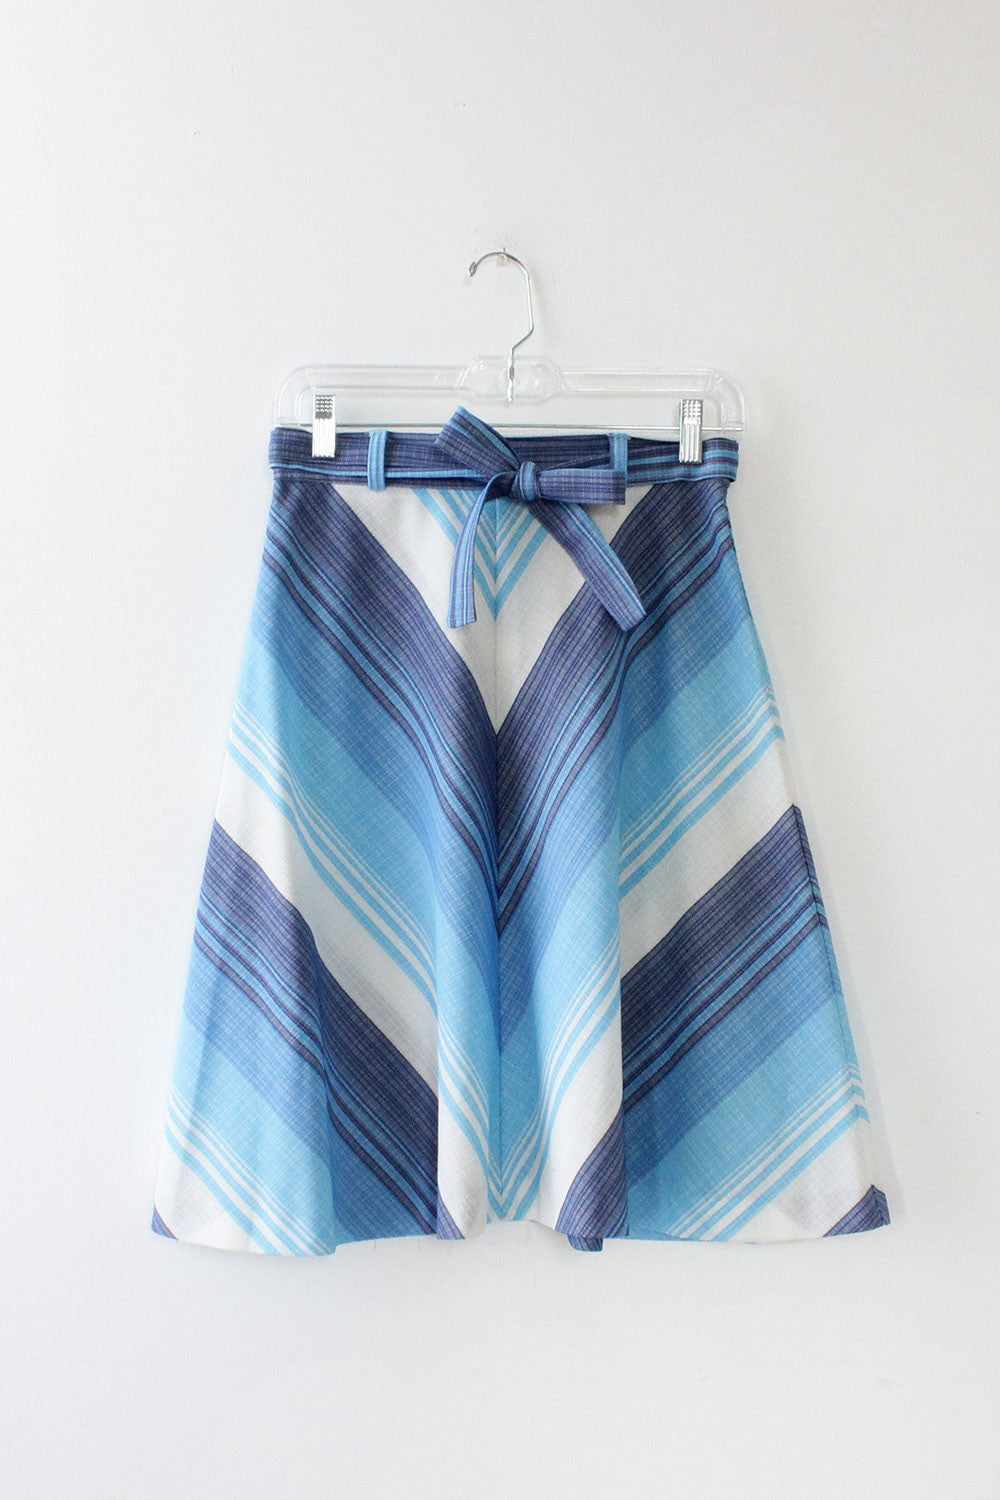 Shades of Blue Chevron Skirt S